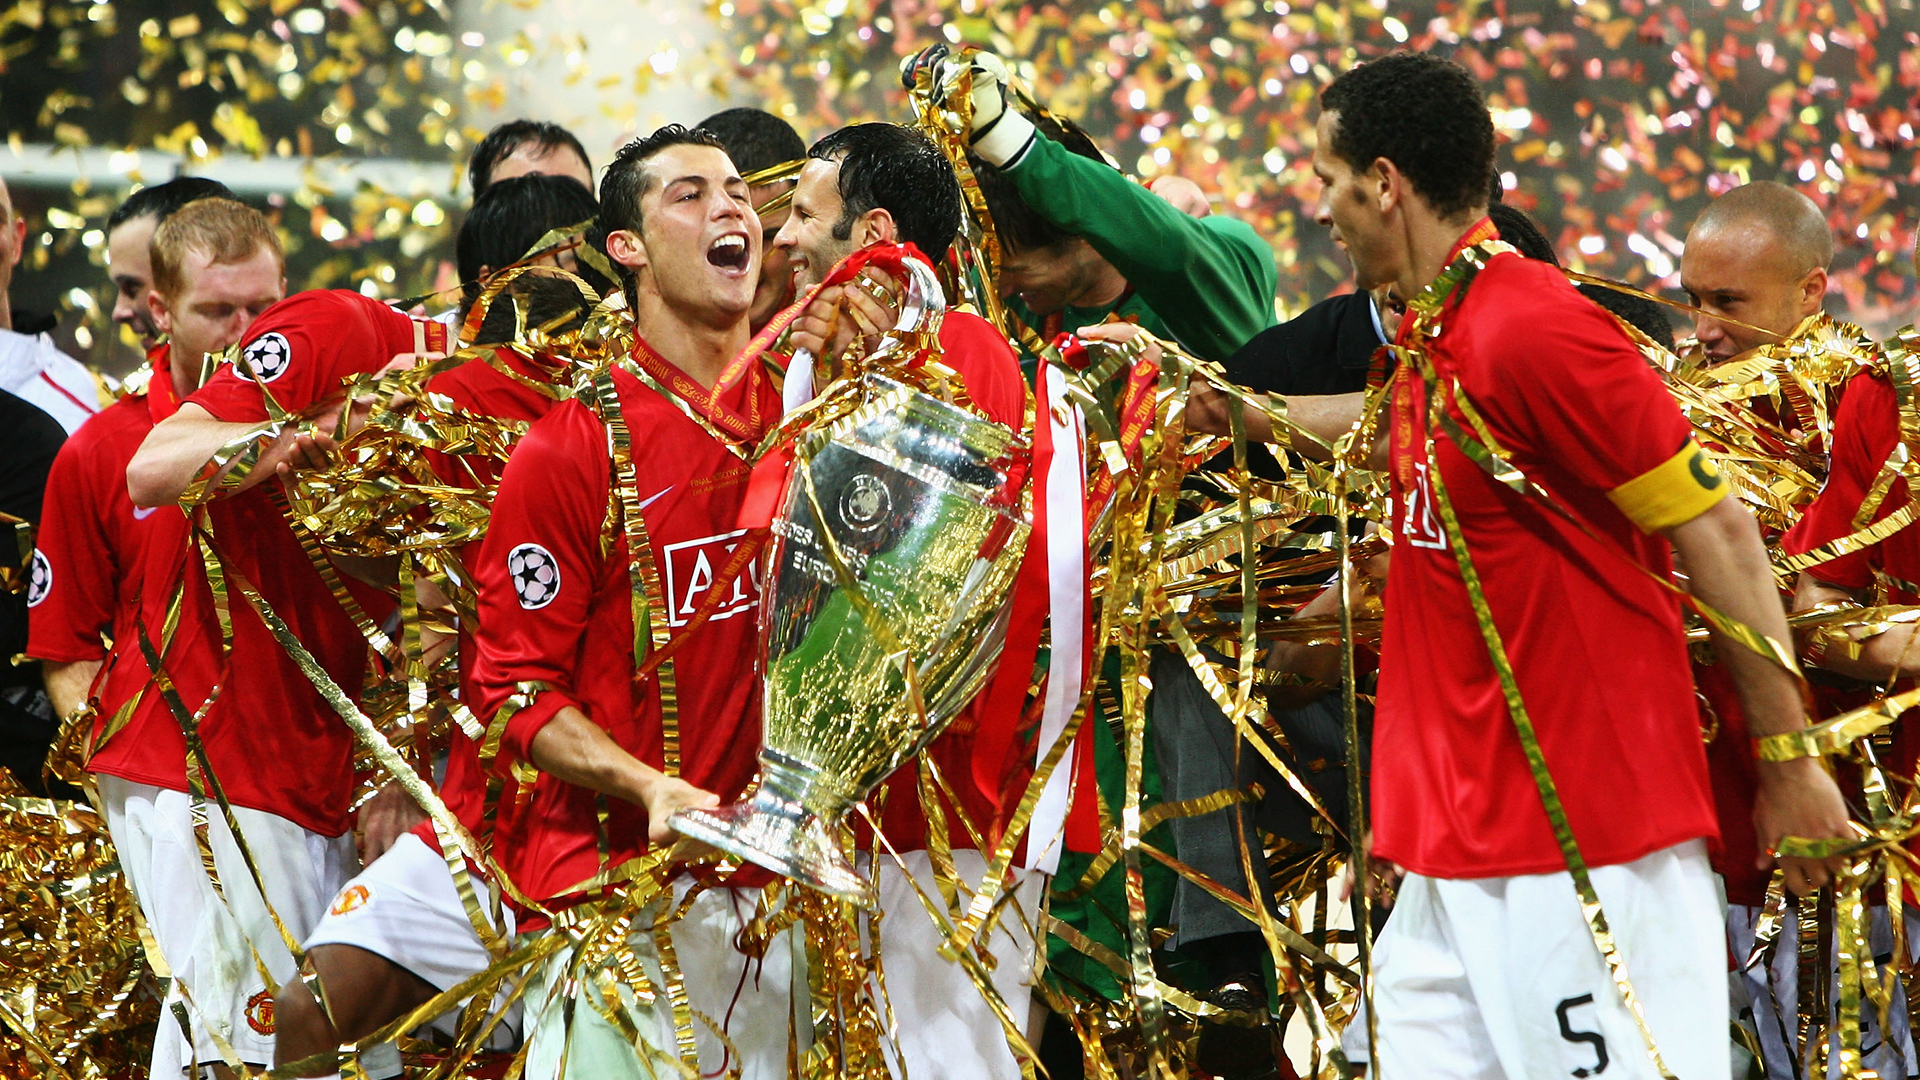 Manchester United's history in the Champions League ...